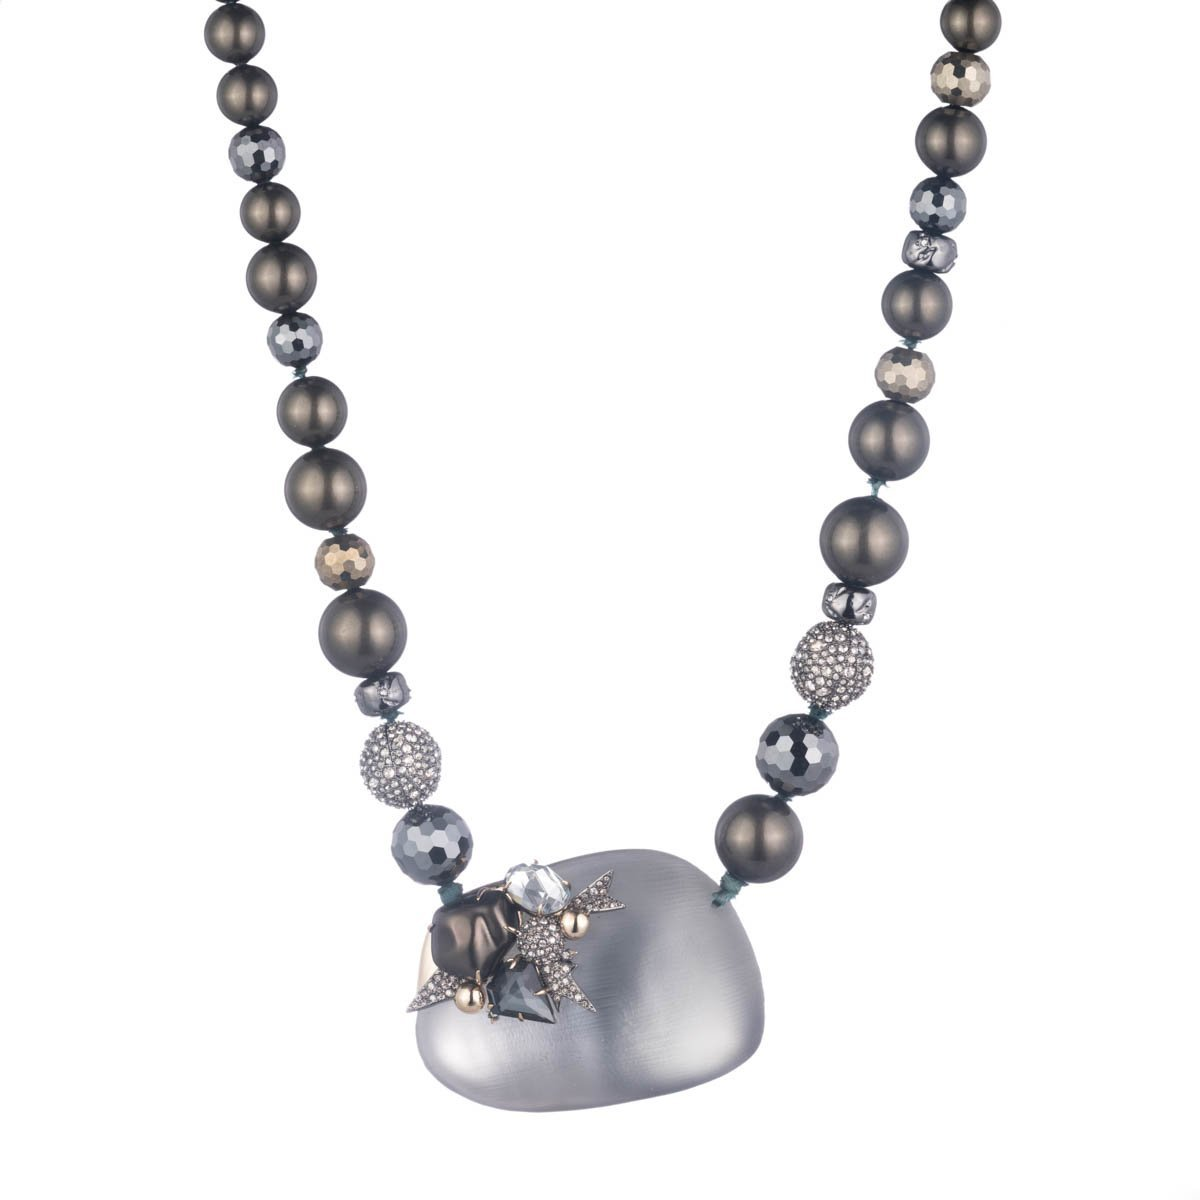 Alexis Bittar Medium Lucite Bib Necklace On Beaded Strand with Pearl and Crystal Detail by Alexis Bittar